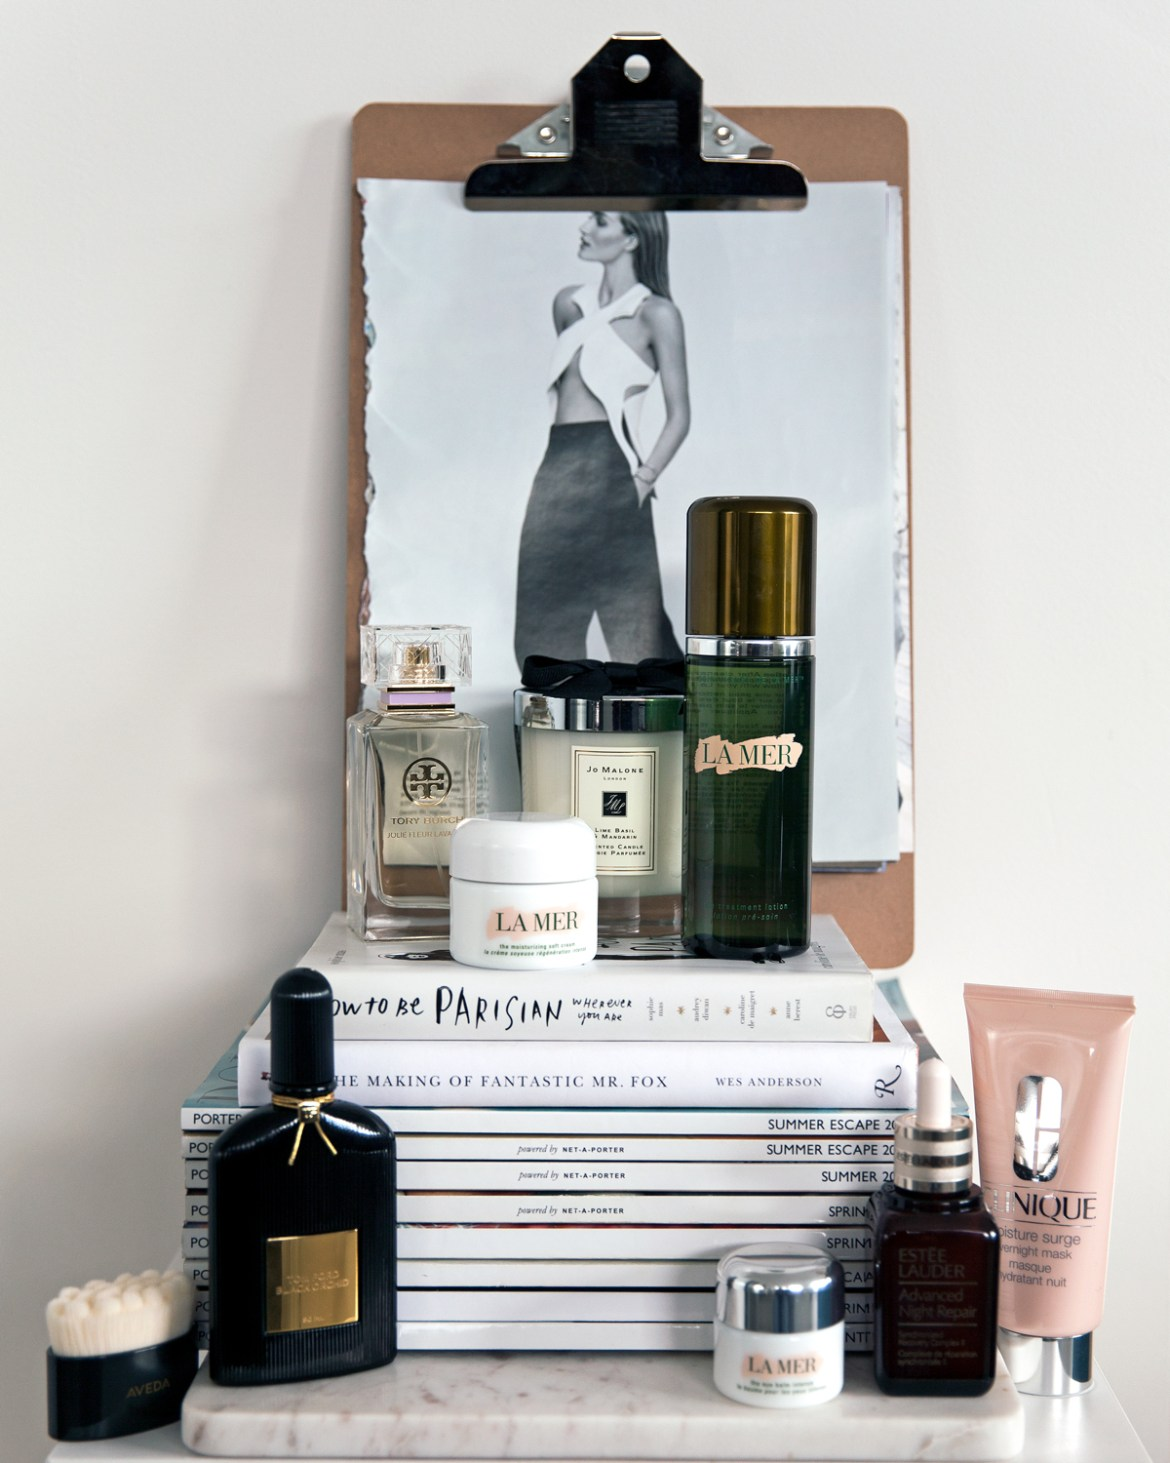 Winter beauty edit by Australian beauty blogger Inspiring Wit featuring La Mer, Clinique, Tom Ford and Estee Lauder